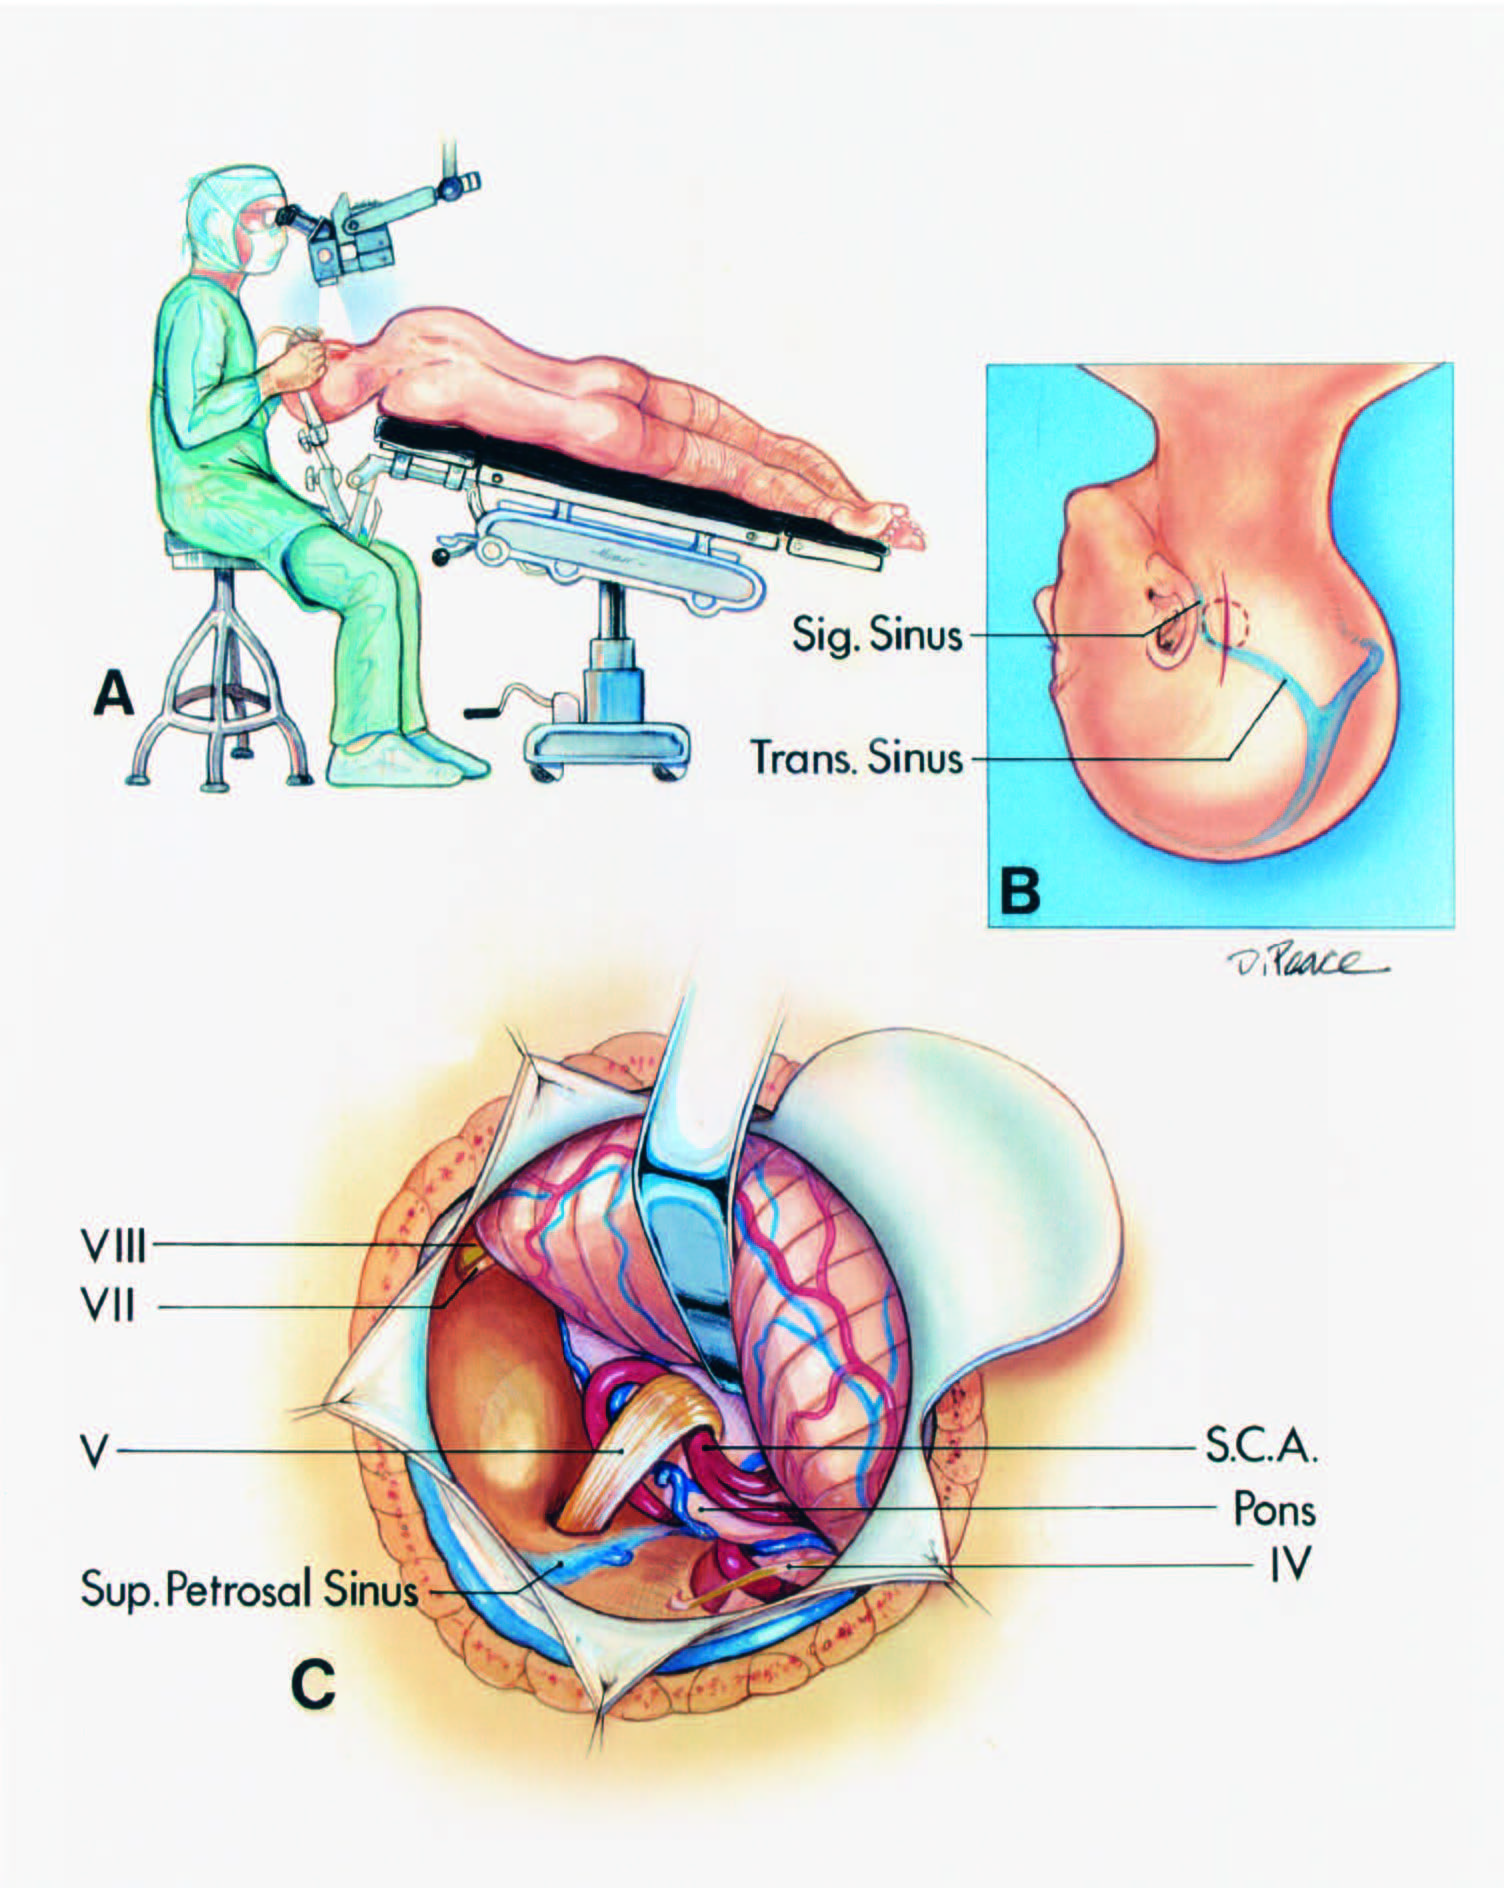 FIGURE 4.8. Retrosigmoid approach to the trigeminal nerve for a microvascular decompression operation. A, (upper left), the patient is positioned in the three-quarter prone position. The surgeon is seated at the head of the table. The table is tilted so that the feet are lower than the heart. B, the vertical paramedian incision crosses the asterion. The superolateral margin of the craniotomy is positioned at the junction of the transverse and sigmoid sinuses. C, the superolateral margin of the cerebellum is gently elevated using a brain spatula tapered from 10 mm at the base to 3 or 5 mm at the tip to expose the site at which the trigeminal nerve enters the pons. The brain spatula is advanced and aligned parallel to the superior petrosal sinus. The trochlear nerve is at the superior margin of the exposure and the facial and vestibulocochlear nerves are at the lower margin. The dura is tacked up to the adjacent muscles to maximize the exposure along the superolateral margin of the cerebellum. The main trunk of the SCA loops down into the axilla of the trigeminal nerve. (From, Rhoton AL Jr: Microsurgical anatomy of decompression operations on the trigeminal nerve, in Rovit RL, Murali R, Jannetta PJ (eds): Trigeminal Neuralgia. Baltimore, Williams & Wilkins, 1990, pp 165–200 [34].) S.C.A., superior cerebellar artery; Sig., sigmoid; Sup., superior; Trans., transverse.